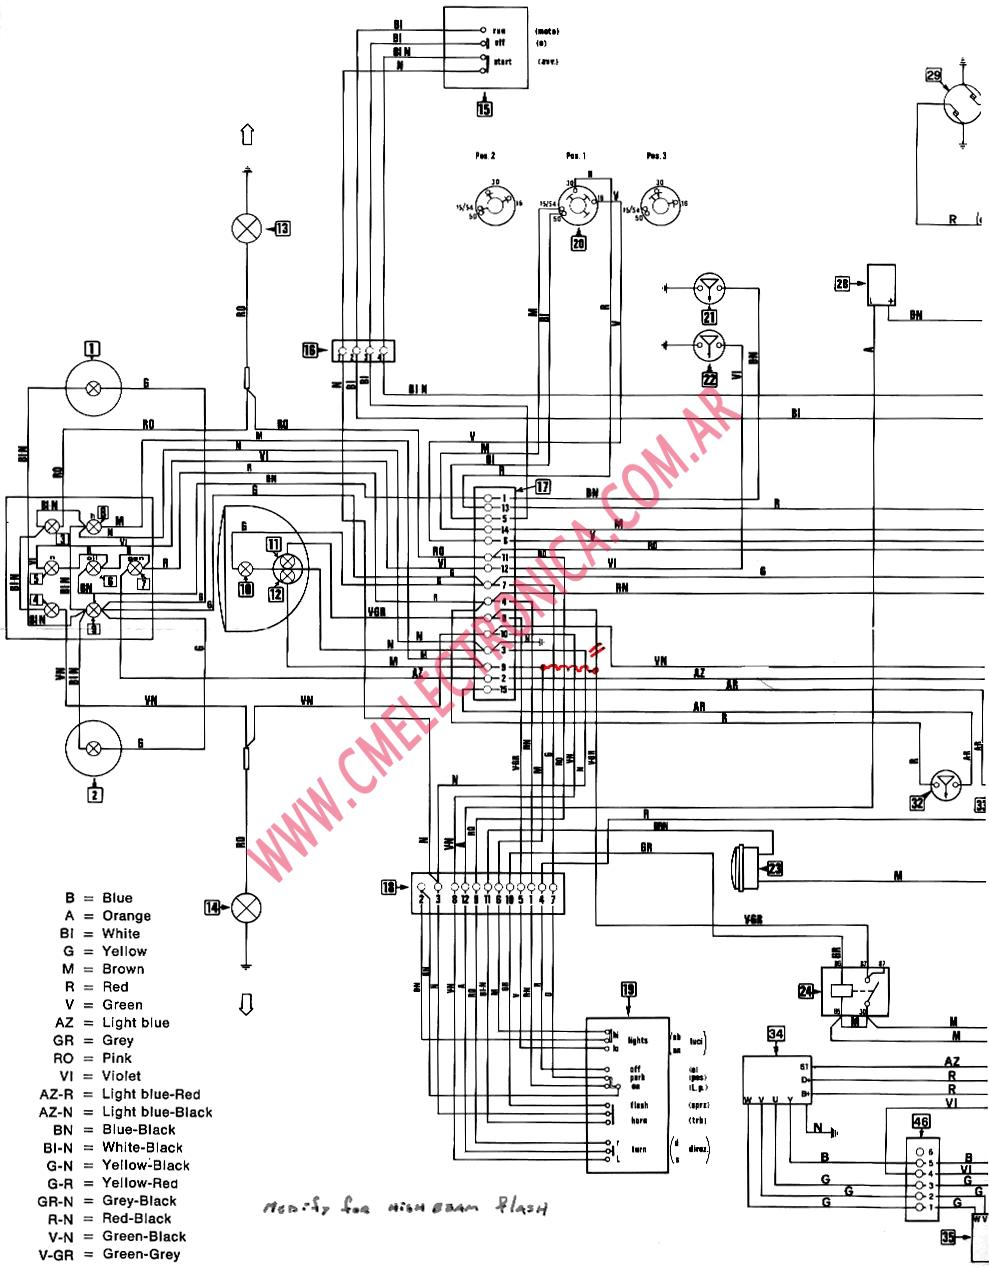 4 Pin Cdi Wire Diagram Chinese Image 5 Automotive Wiring Diagrams Moto Guzzi Flasher